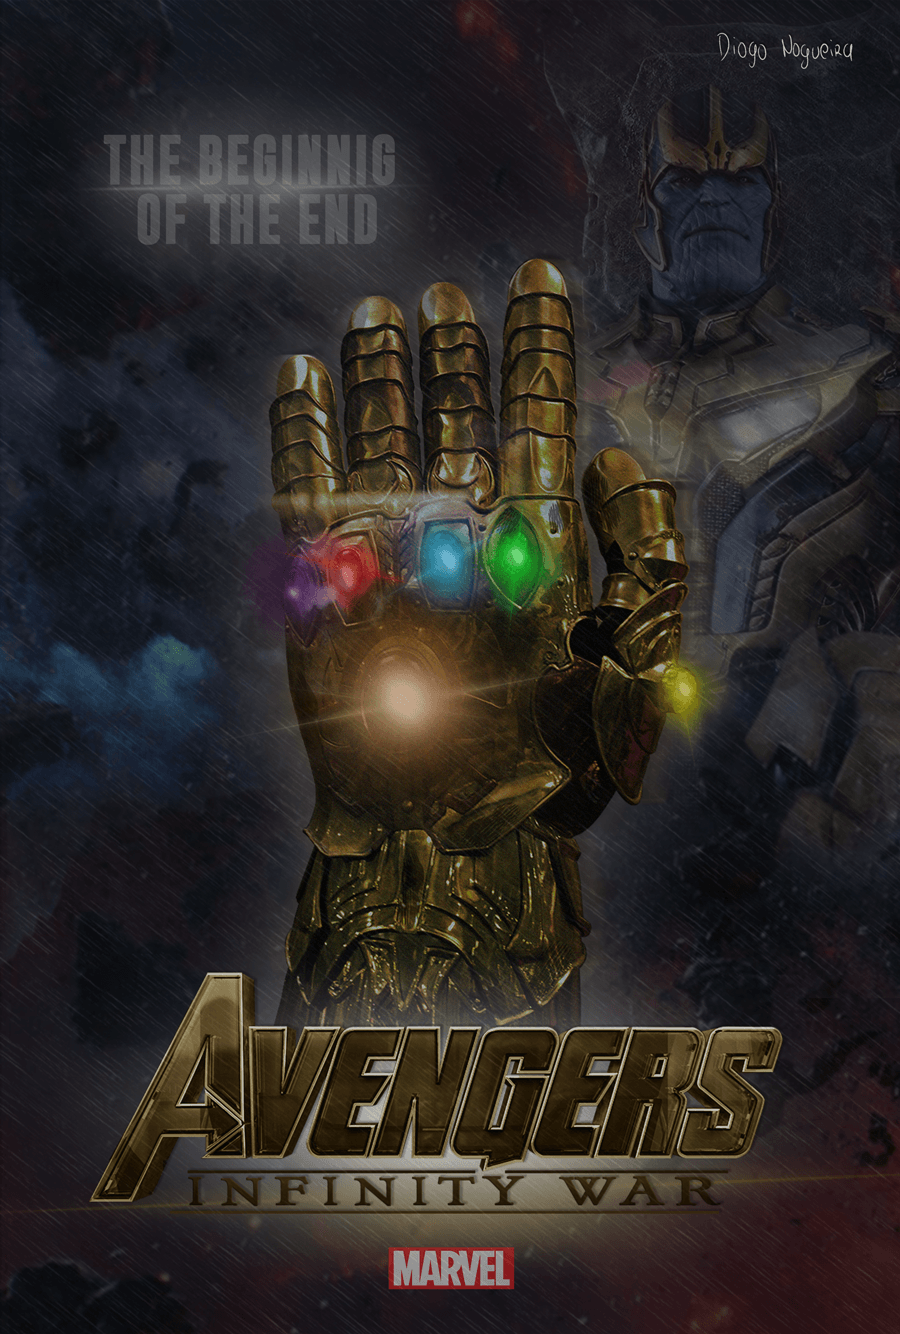 Thanos - Avengers: Infinity War by diogosnog on DeviantArt